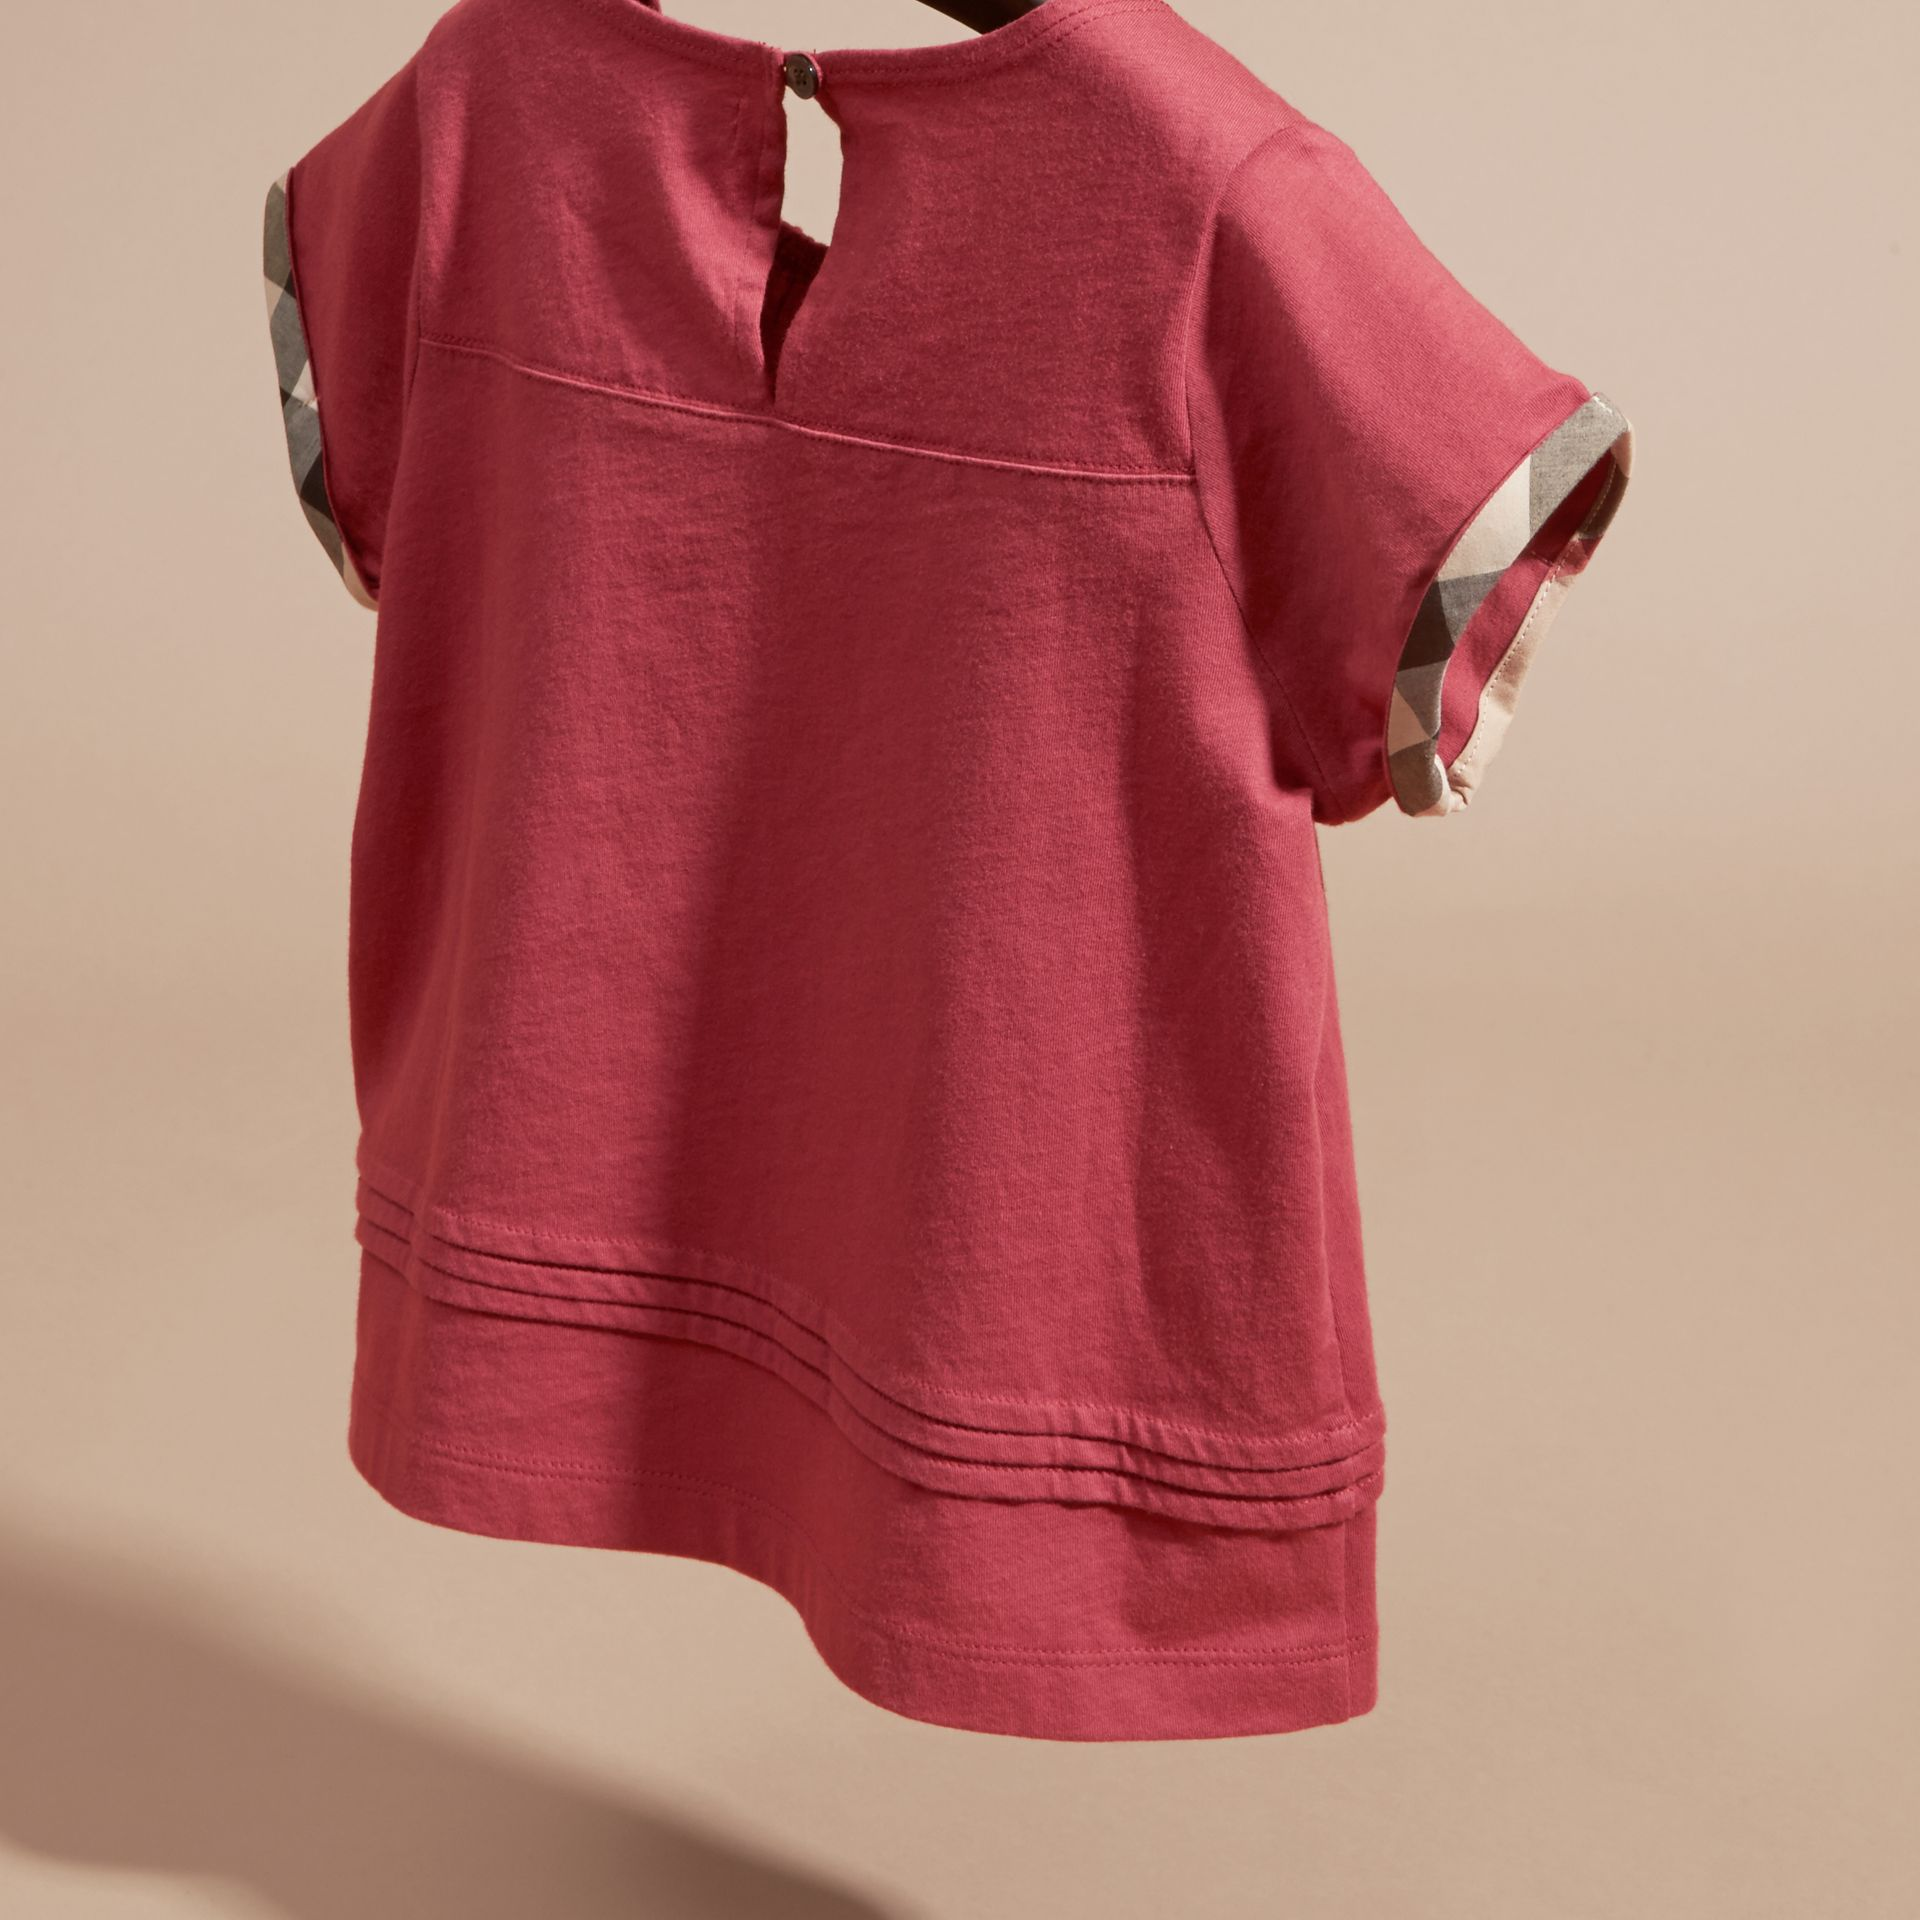 Dark plum pink Pleat Detail Check Cotton T-Shirt Dark Plum Pink - gallery image 4